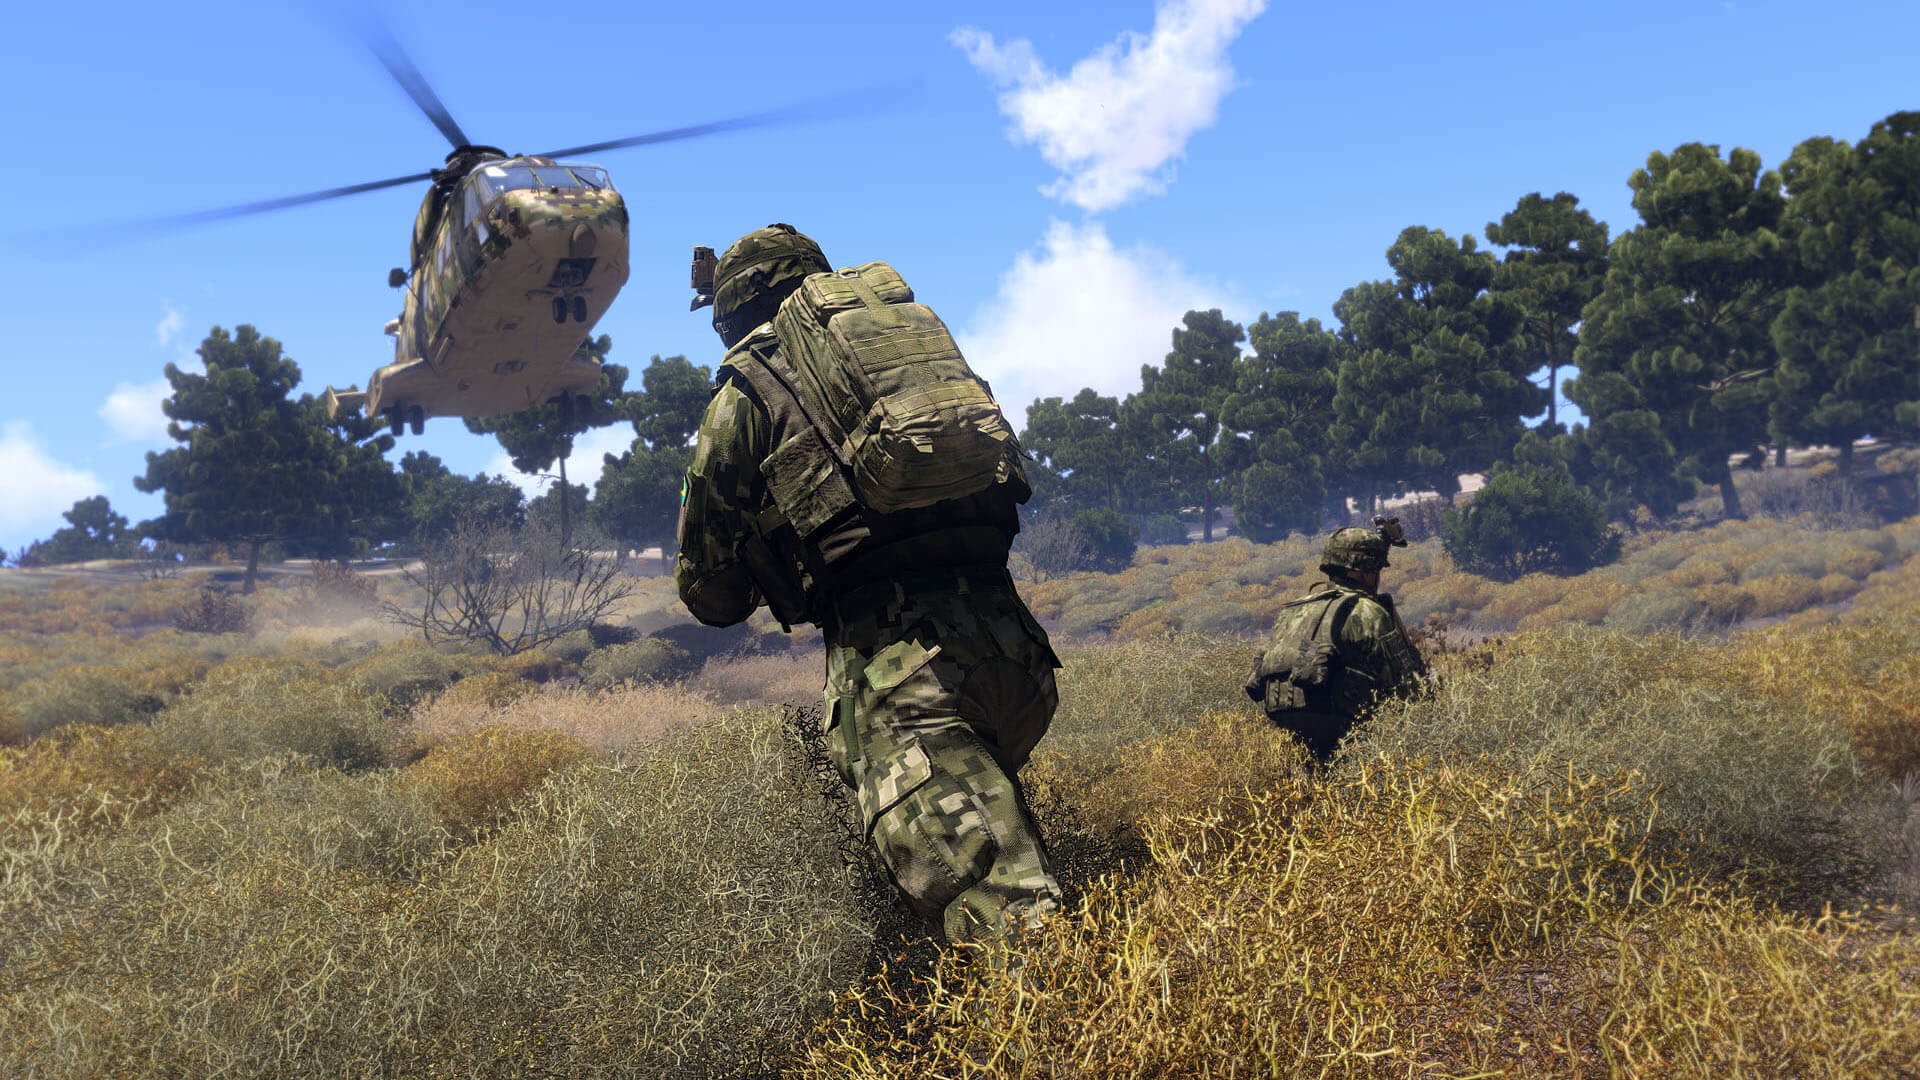 Helicopter landing in Arma 3